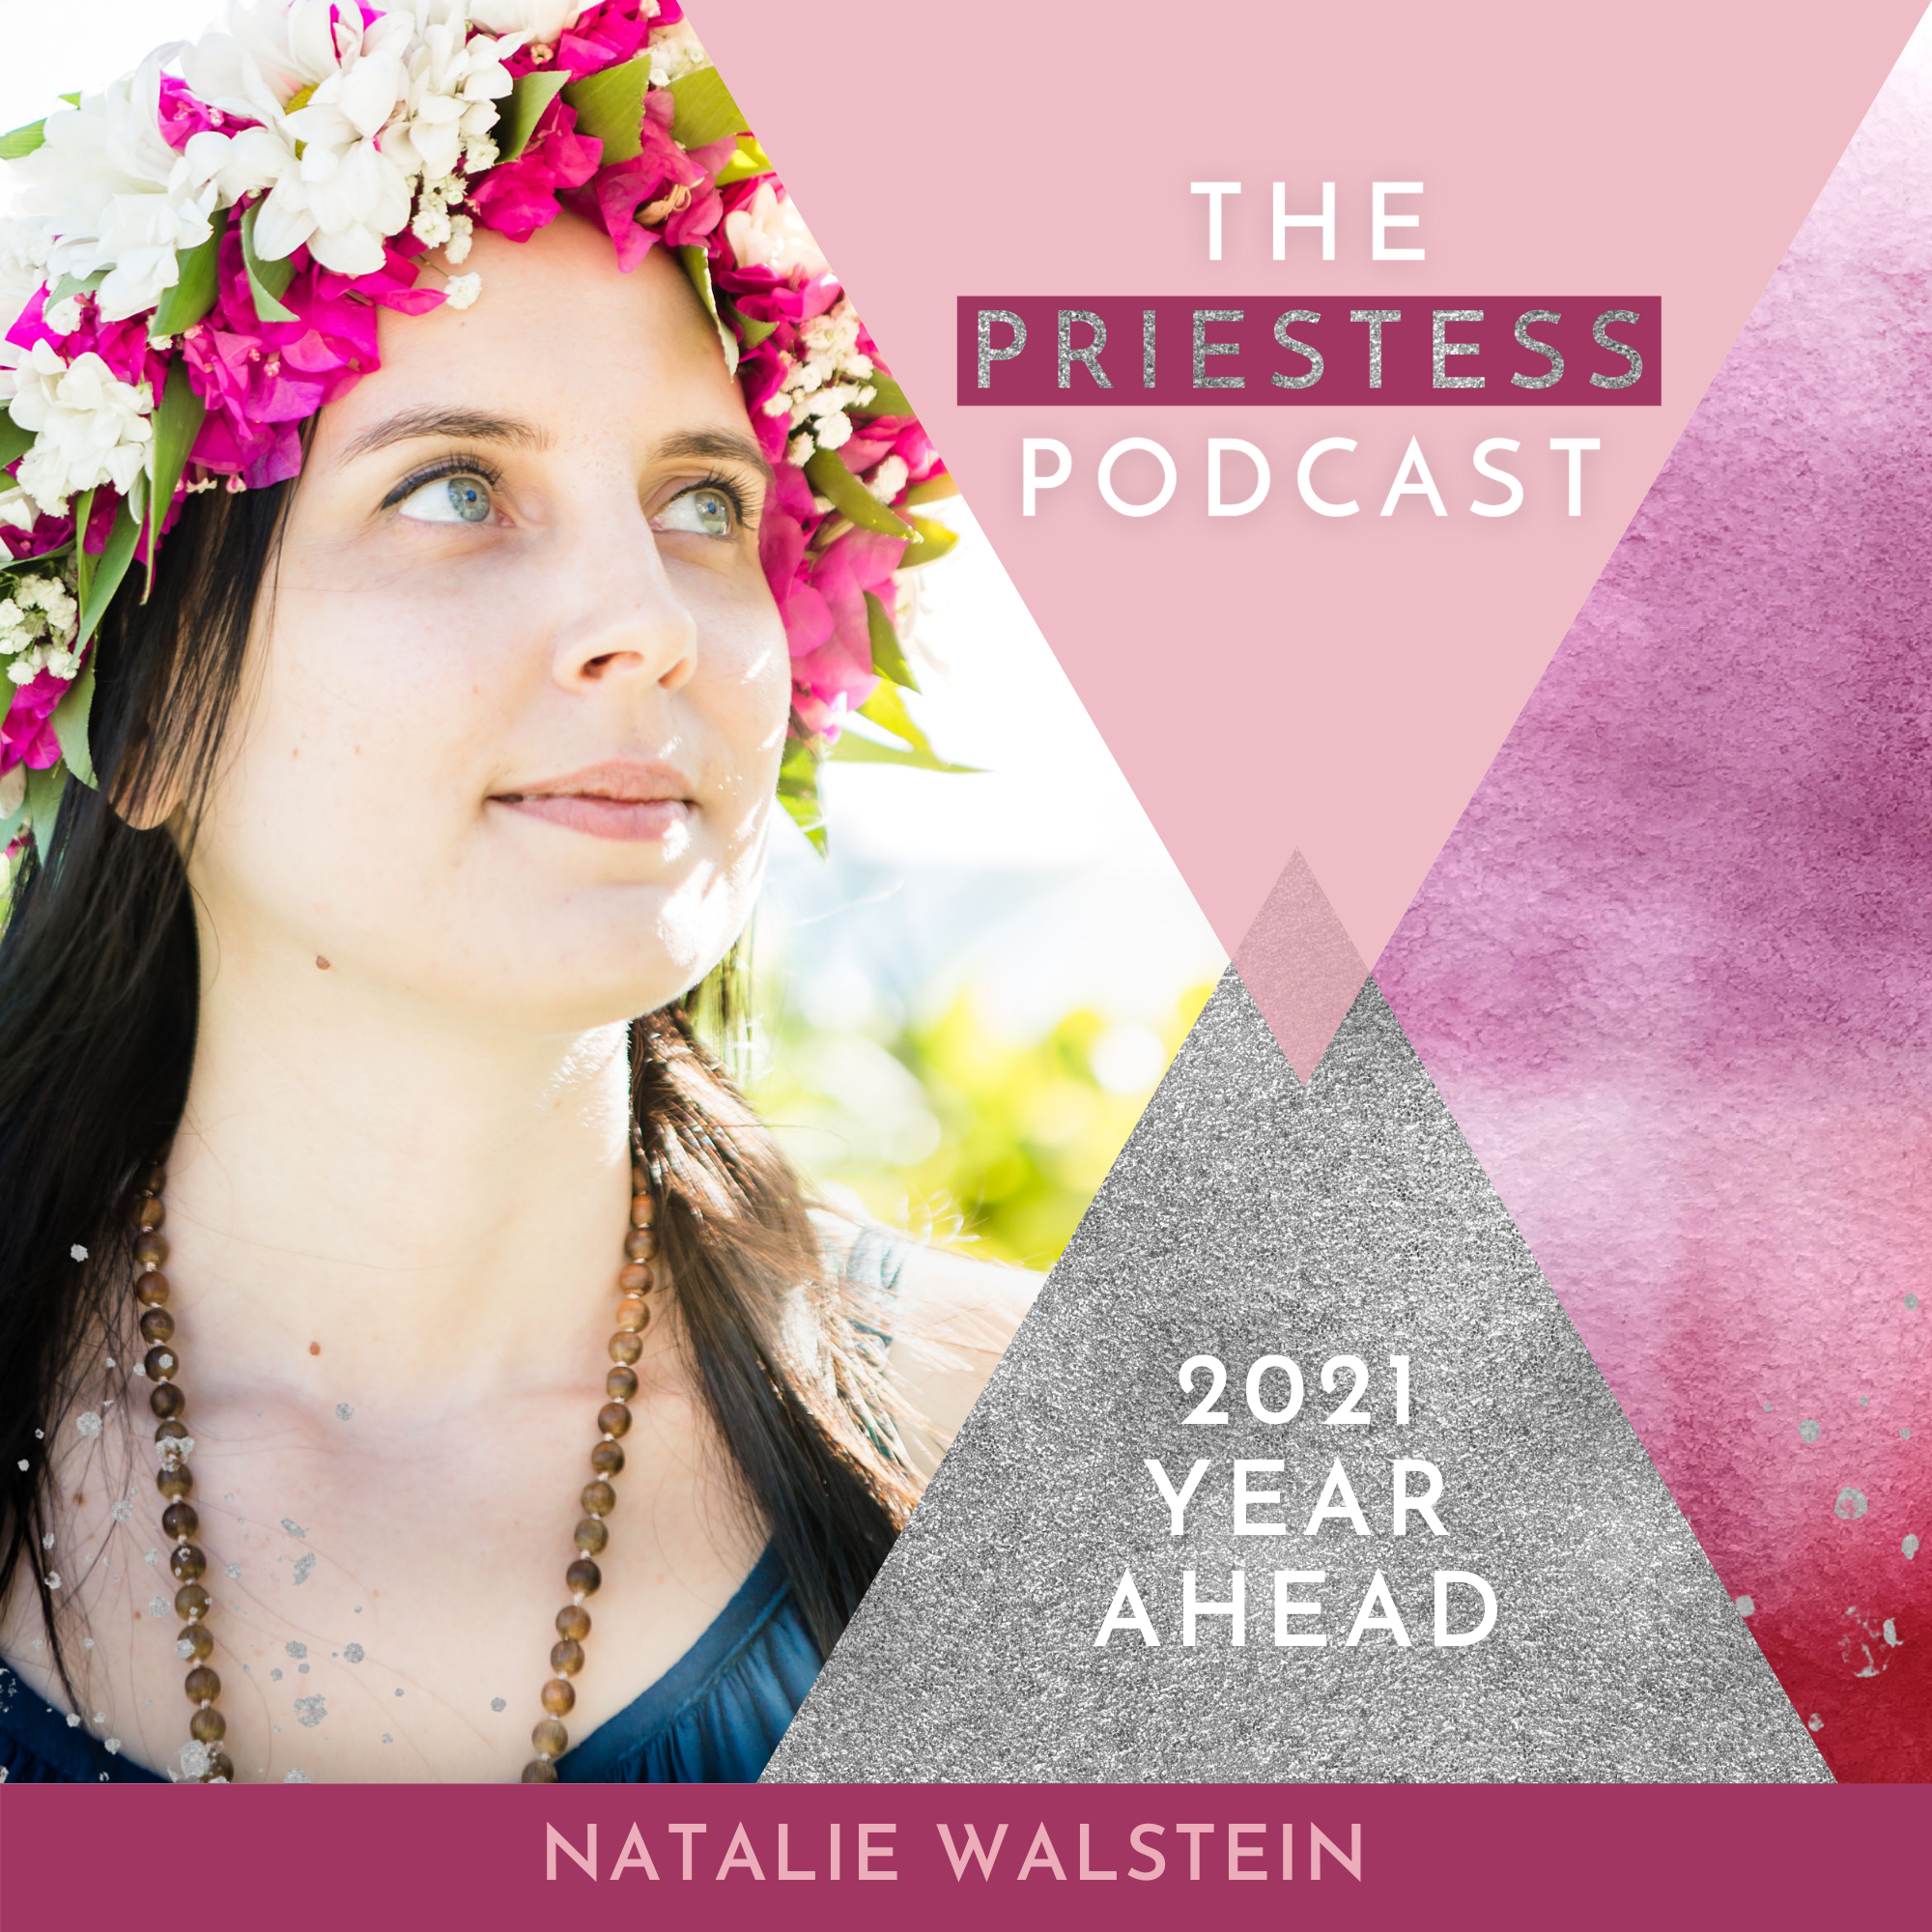 Natalie Walstein on 2021 Year Ahead